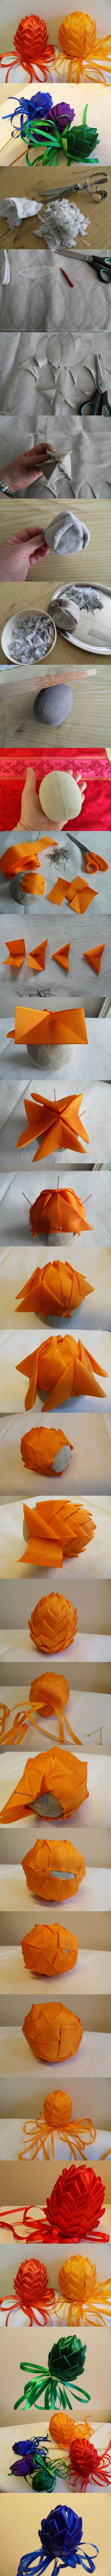 DIY Easter Egg Decoration Artichoke 2